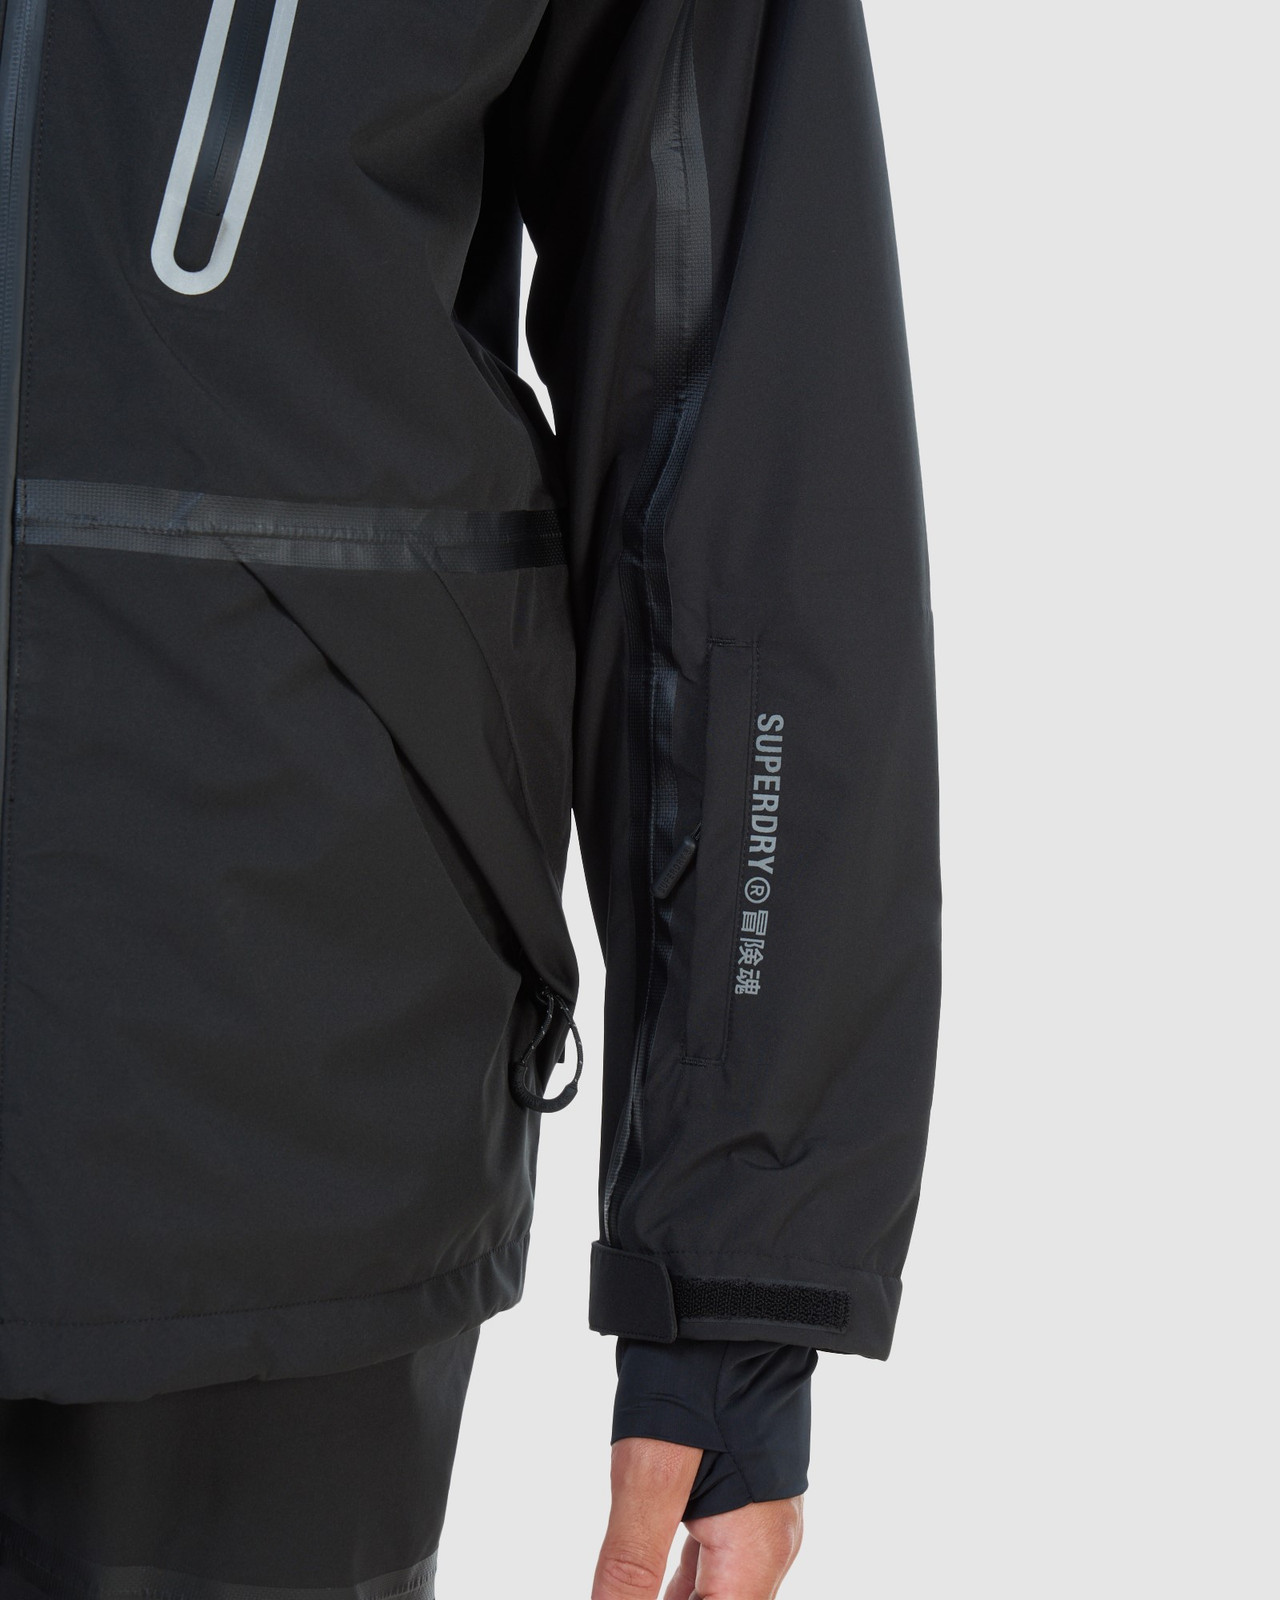 Superdry Mens EXPEDITION SHELL JACKET Black Snow Jackets 13